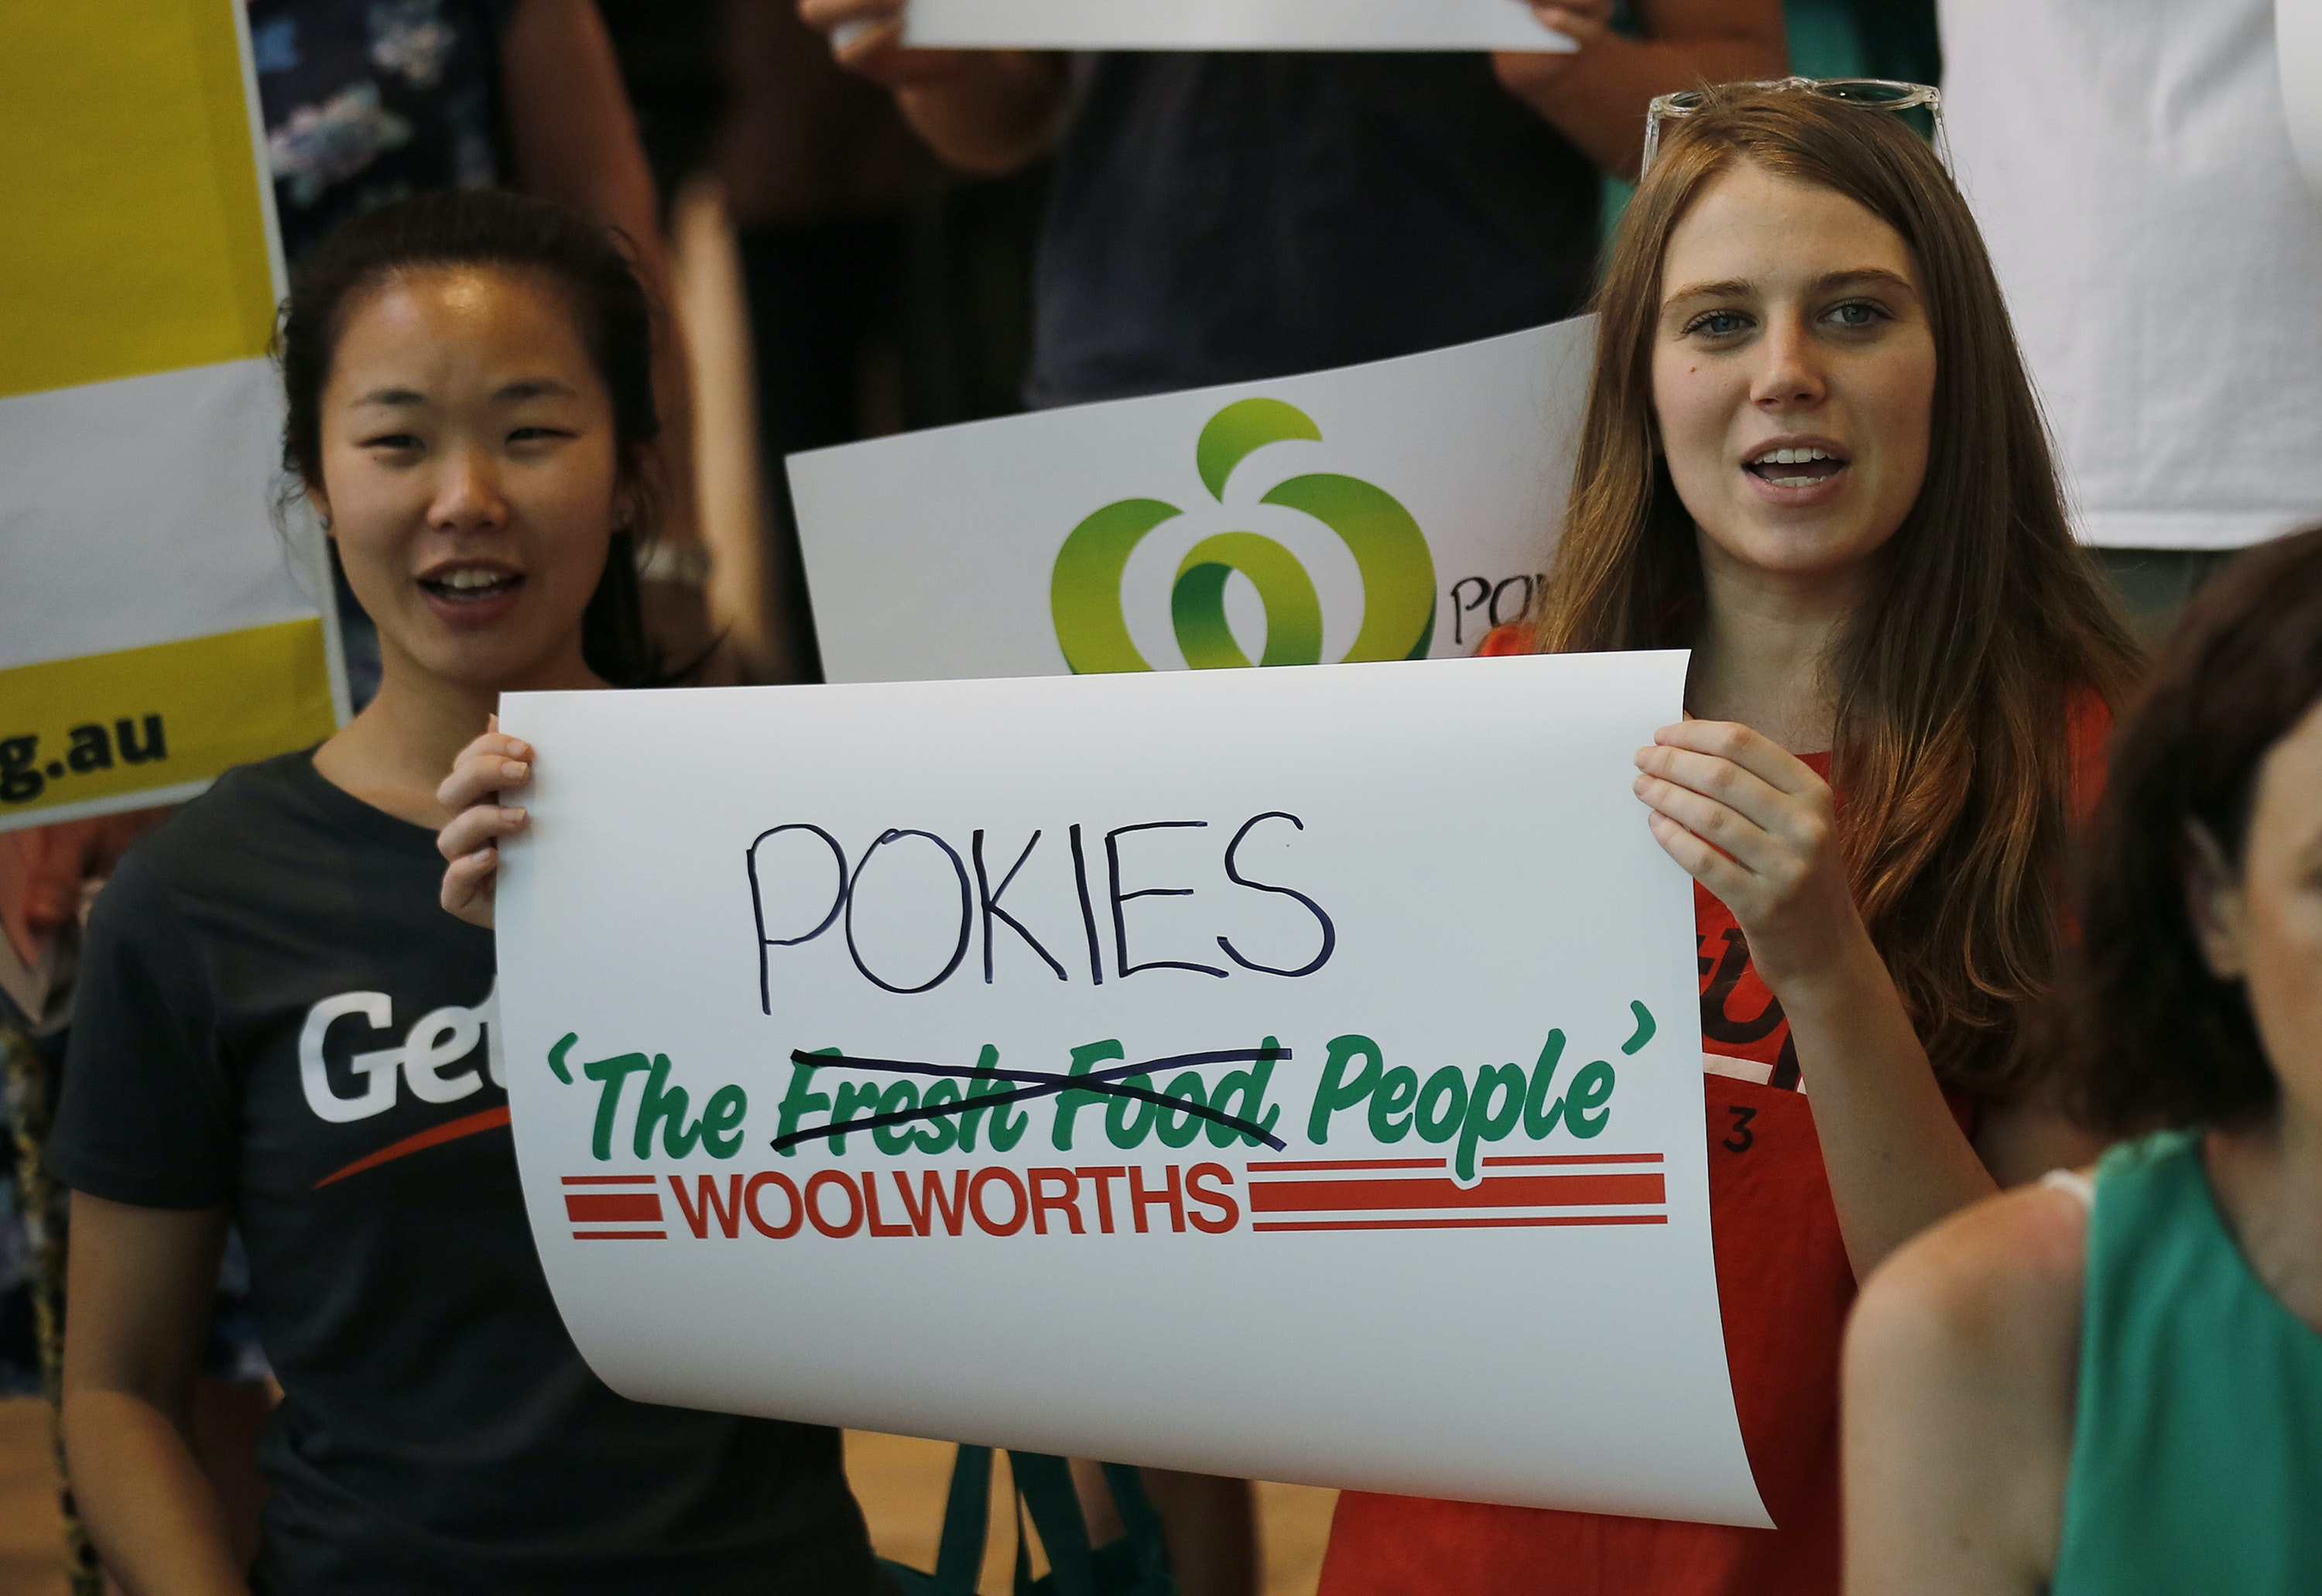 'Do whatever you have to': Woolworths staff rewarded for spying on pokie players